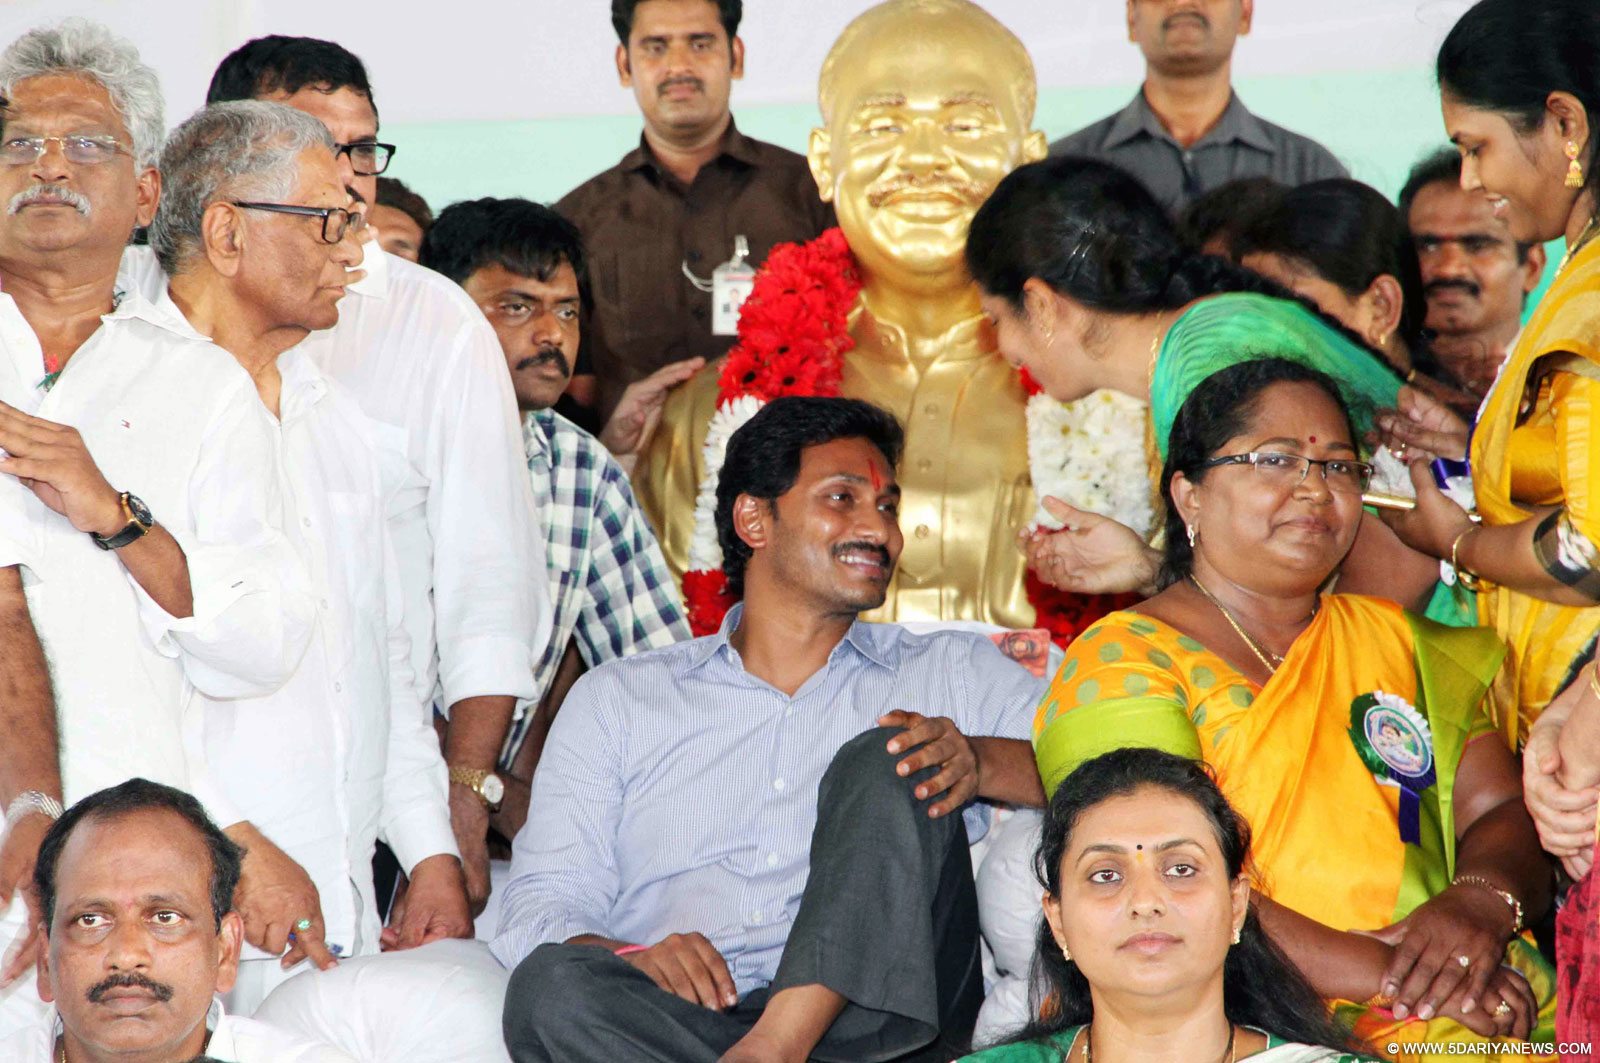 YSR Congress chief Y S Jagan Mohan Reddy goes on an indefinite hunger strike to press for special status for Andhra Pradesh in Guntur on Oct 7, 2015.